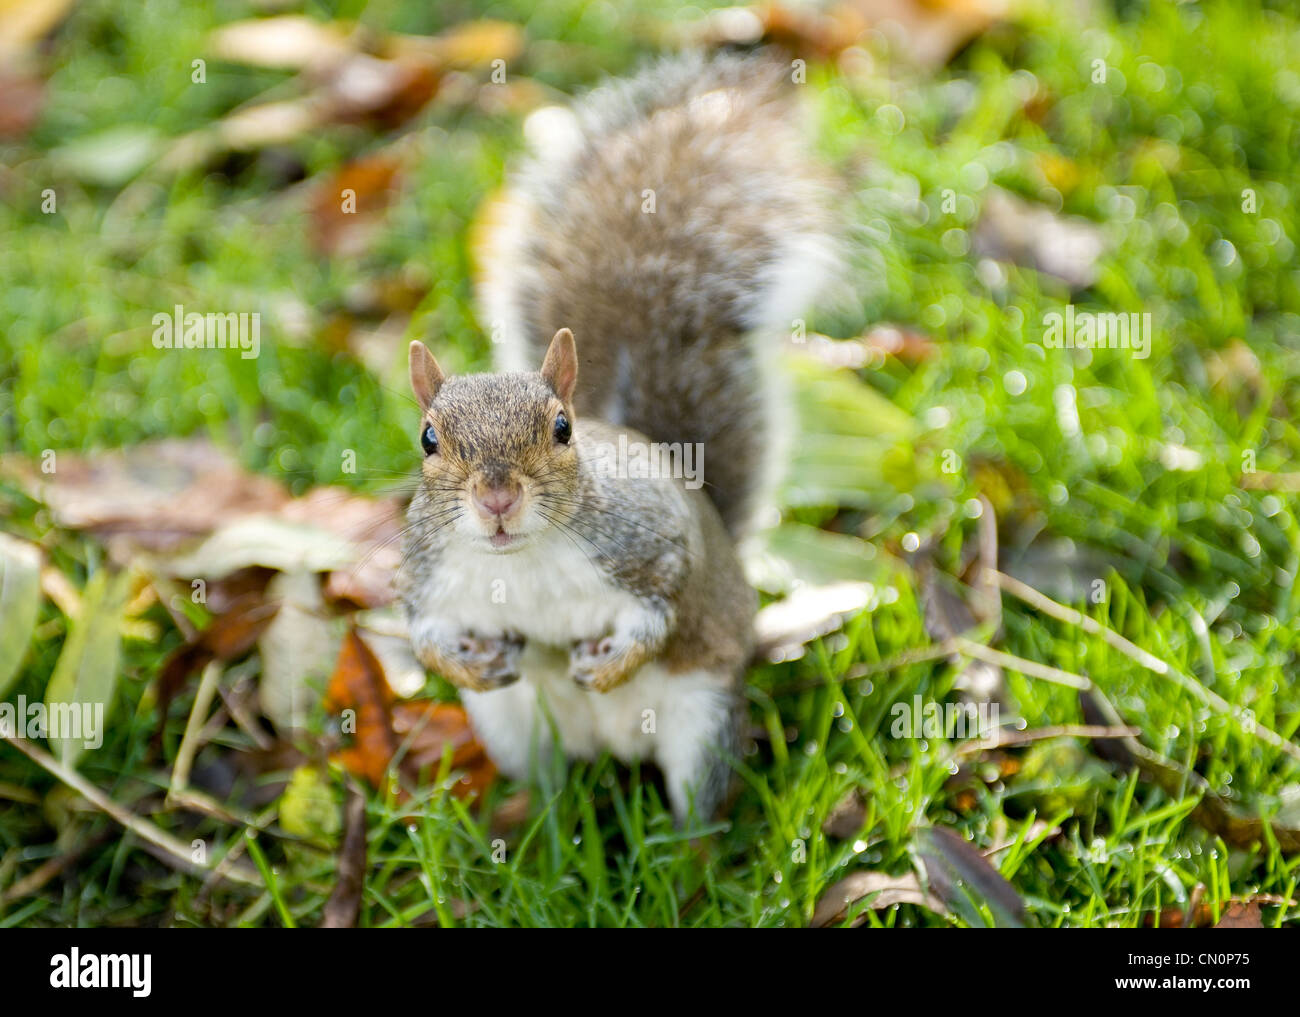 A cheeky squirrel looking for nuts looks up at the camera in the park during autumn. - Stock Image